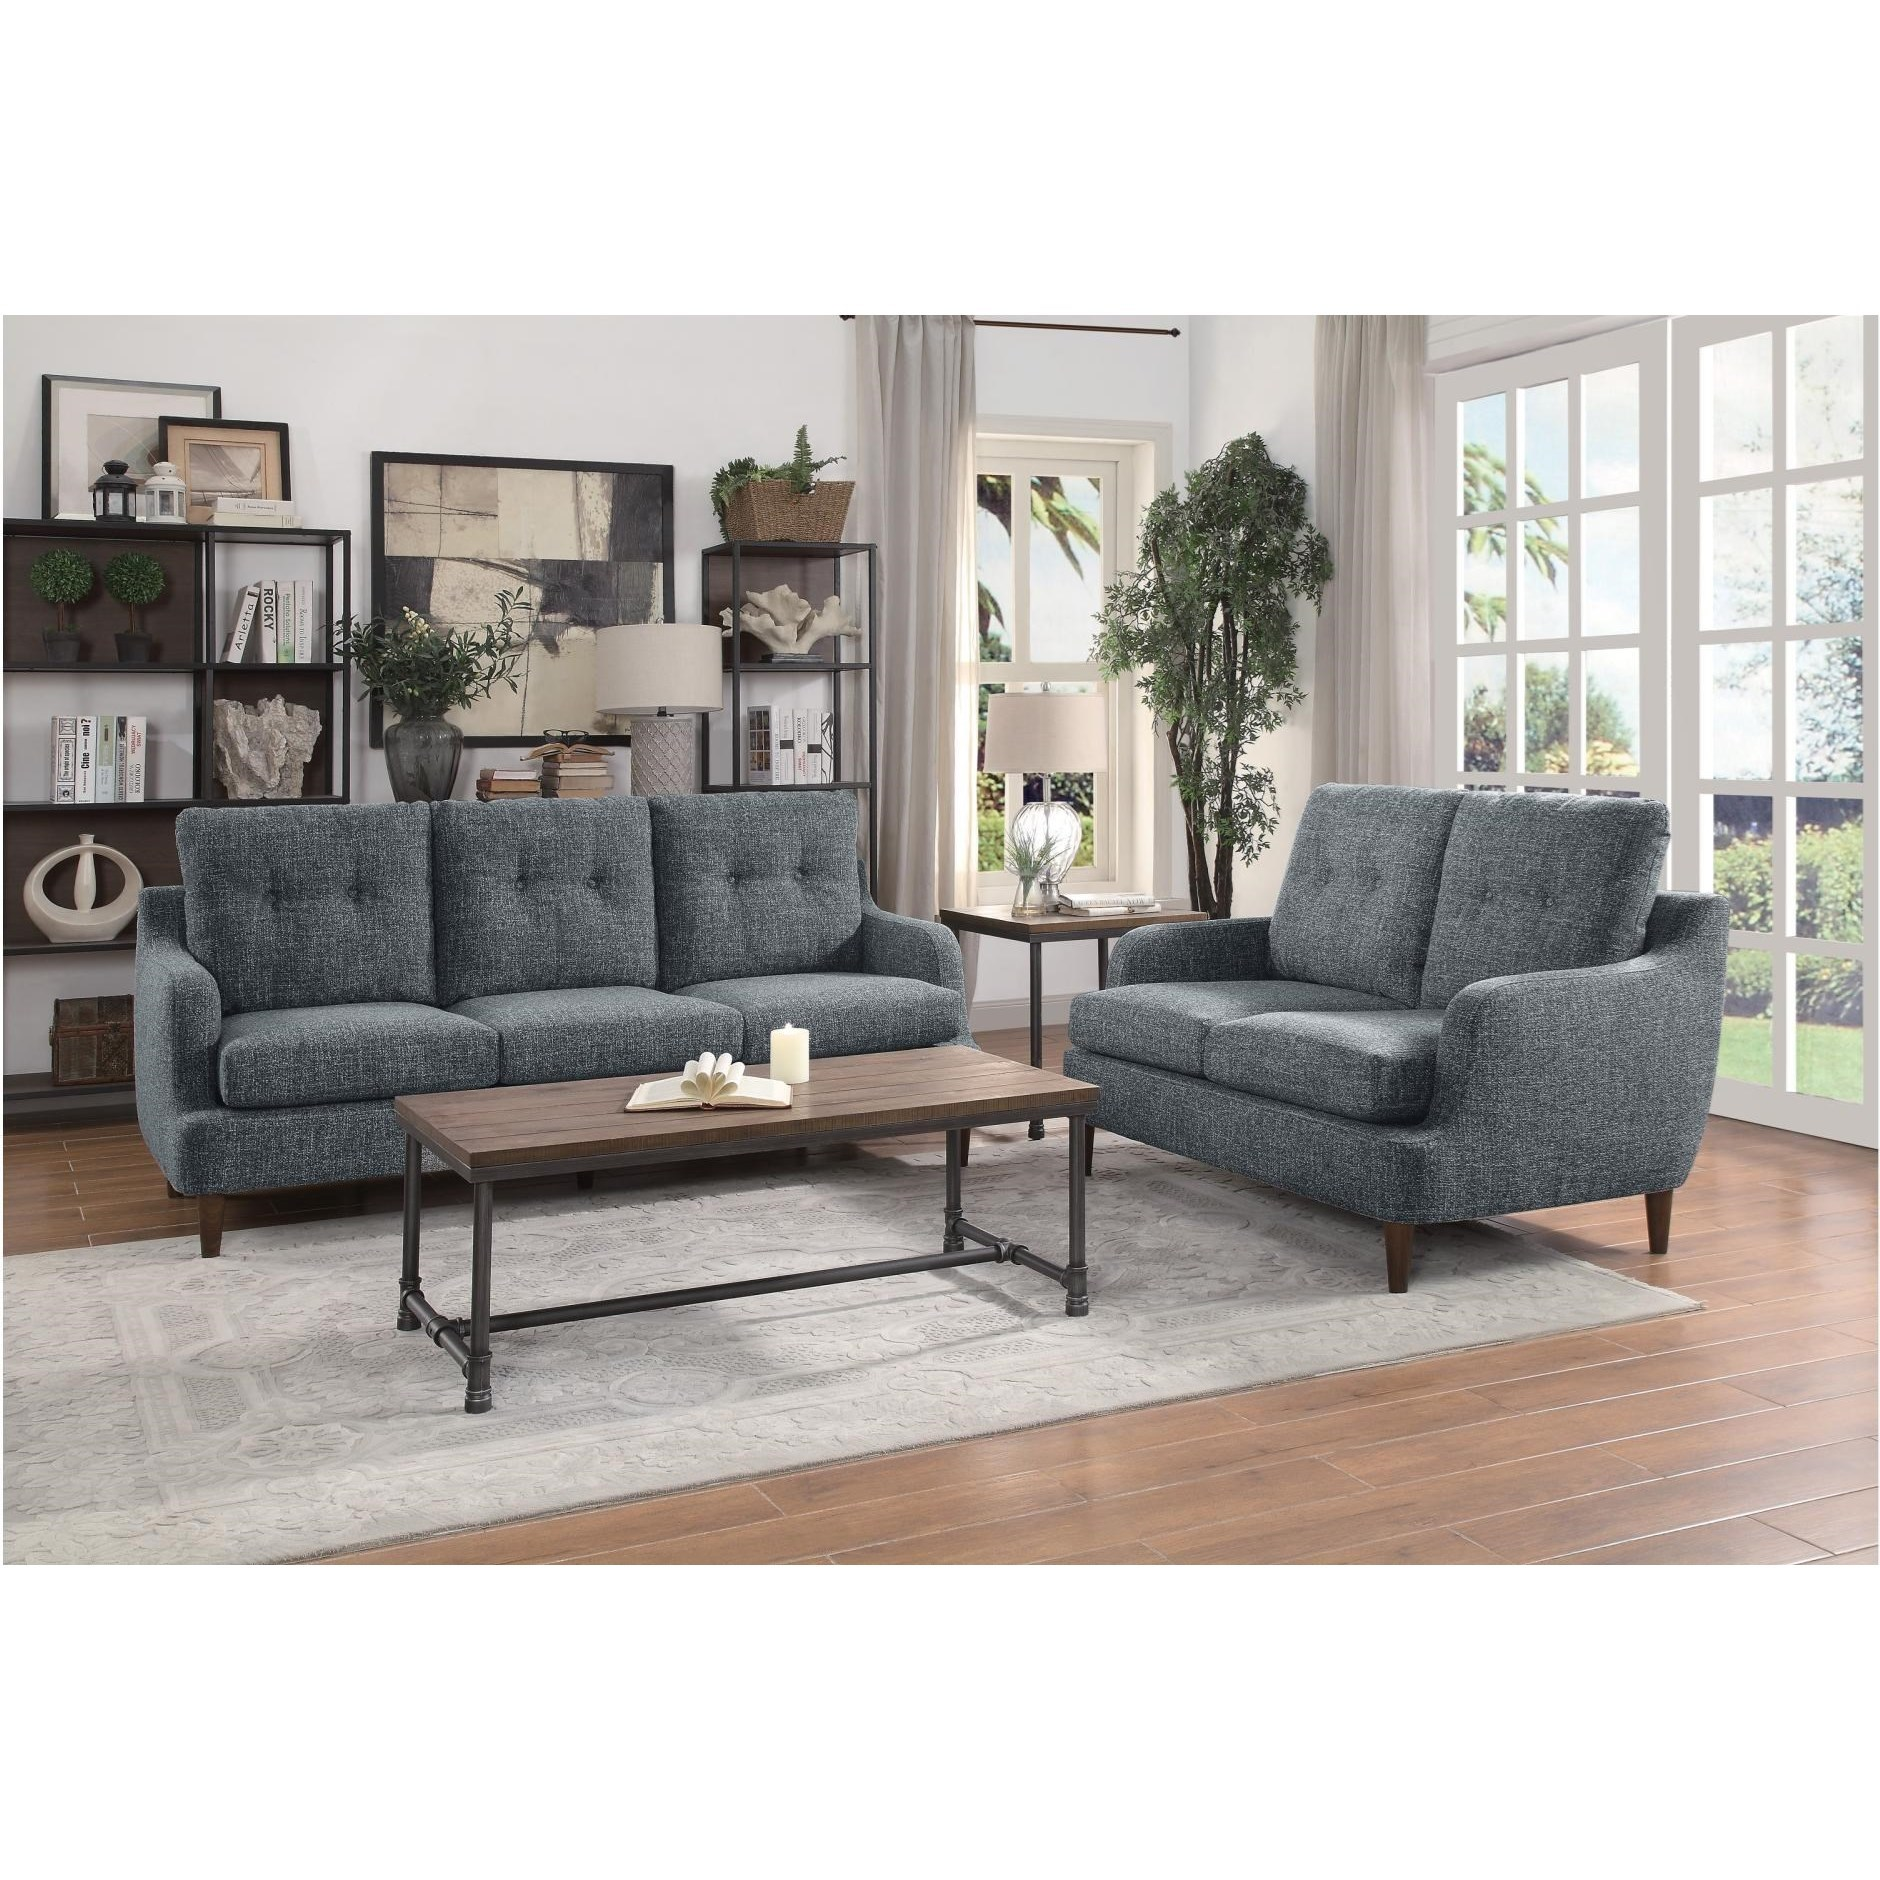 Cagle Stationary Living Room Group by Homelegance at Carolina Direct